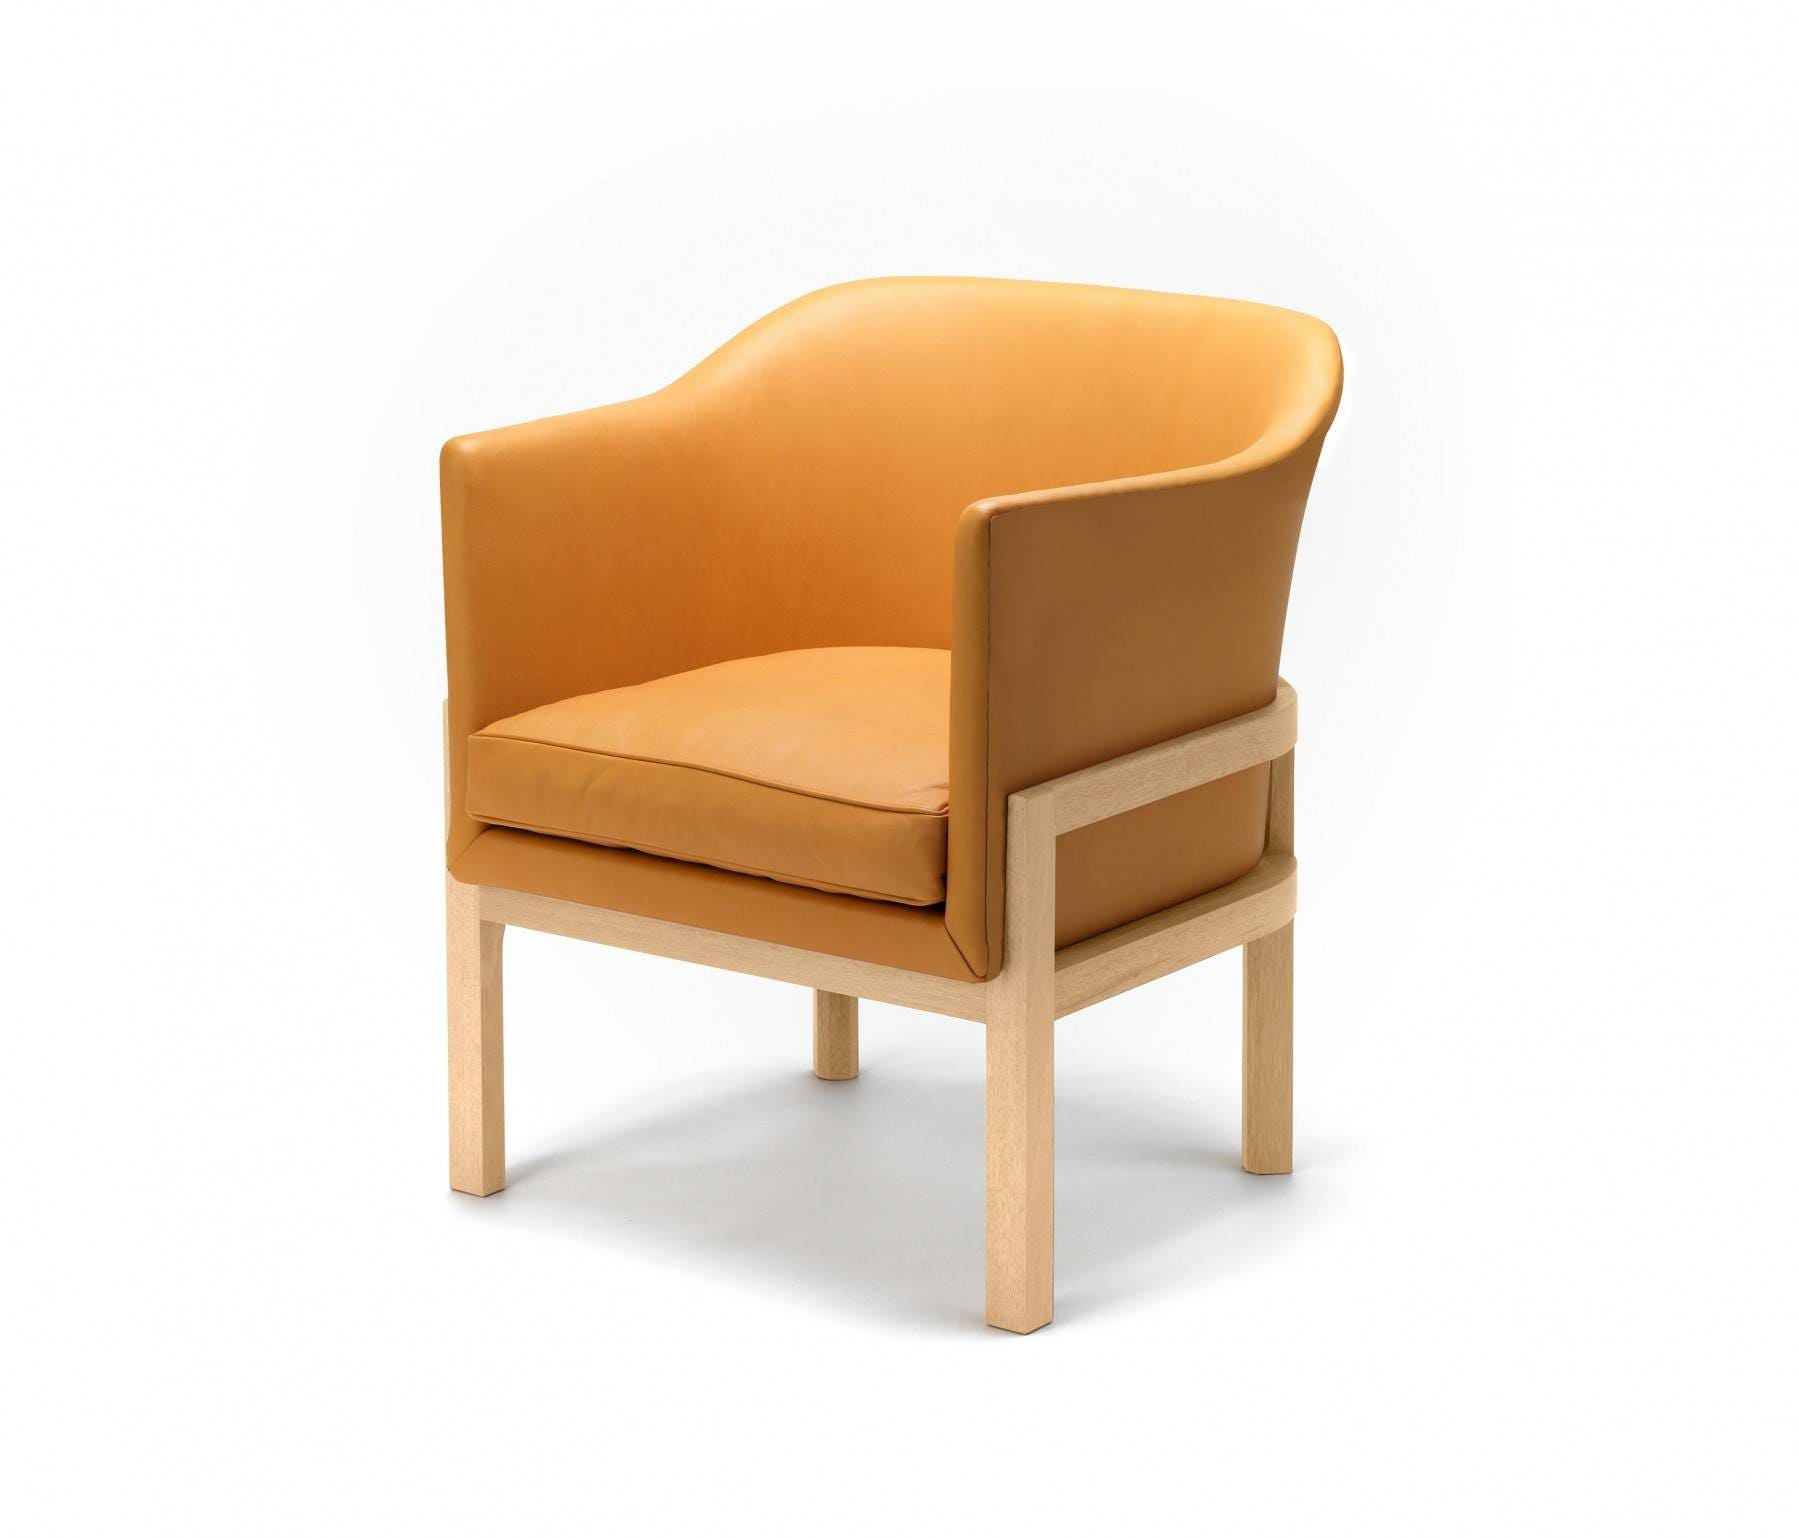 Carl Hansen & Son MK10040 Model 51 Chair